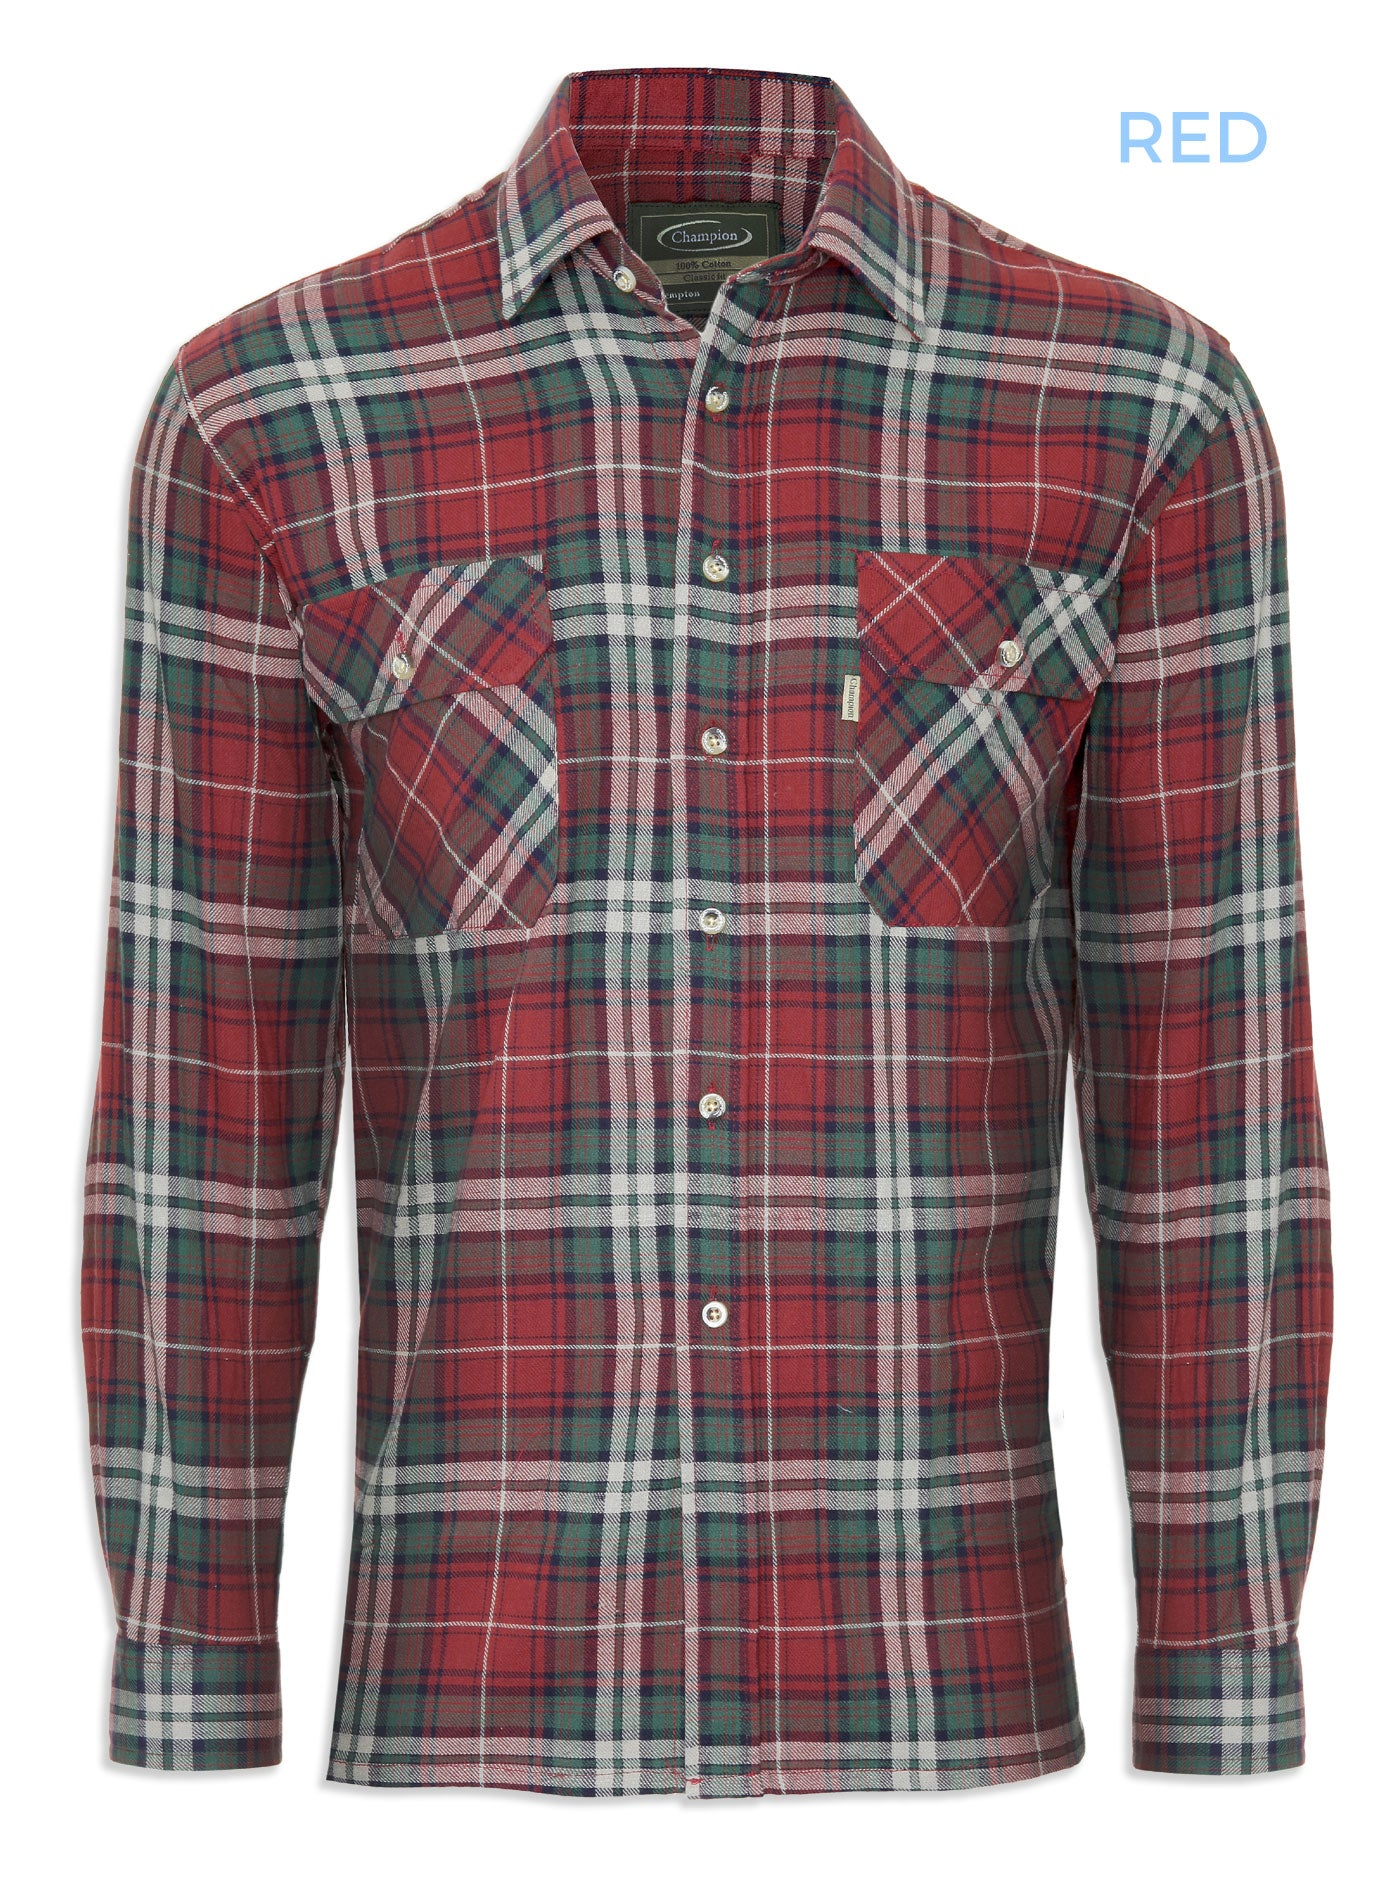 Red and brown tartan shirt chmpion kempton cotton